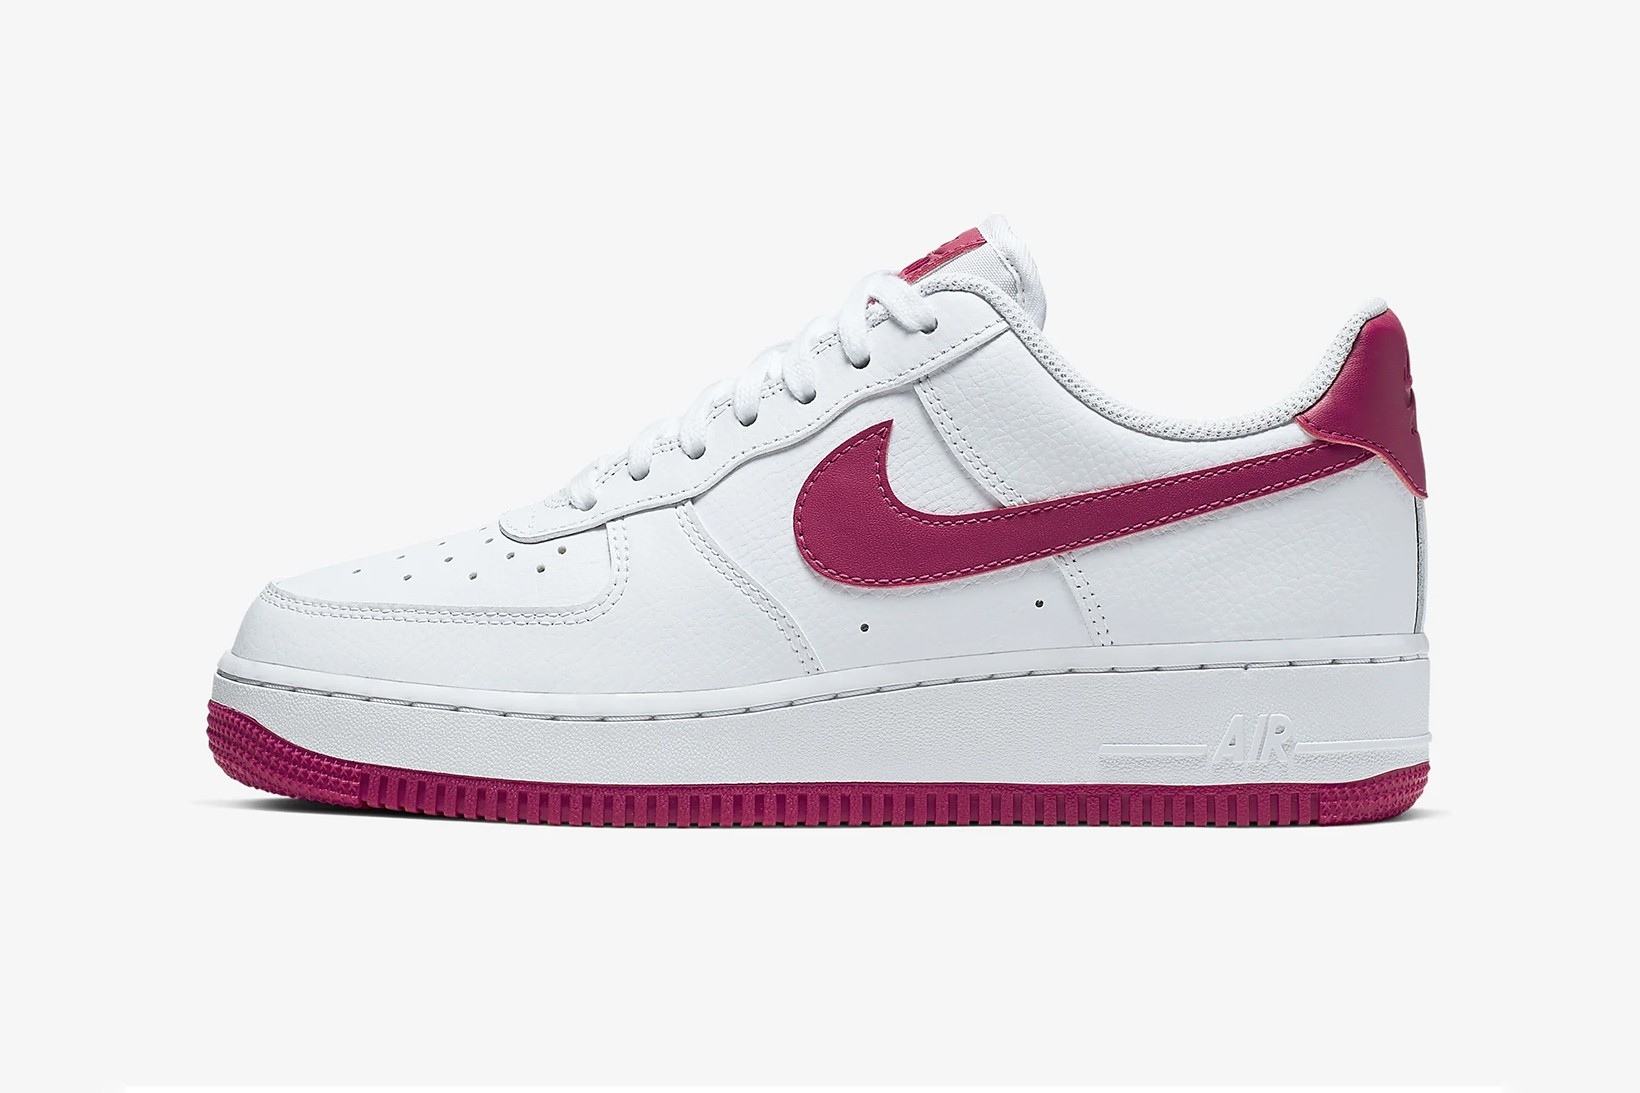 Nike's Air Force 1 '07 in Two New